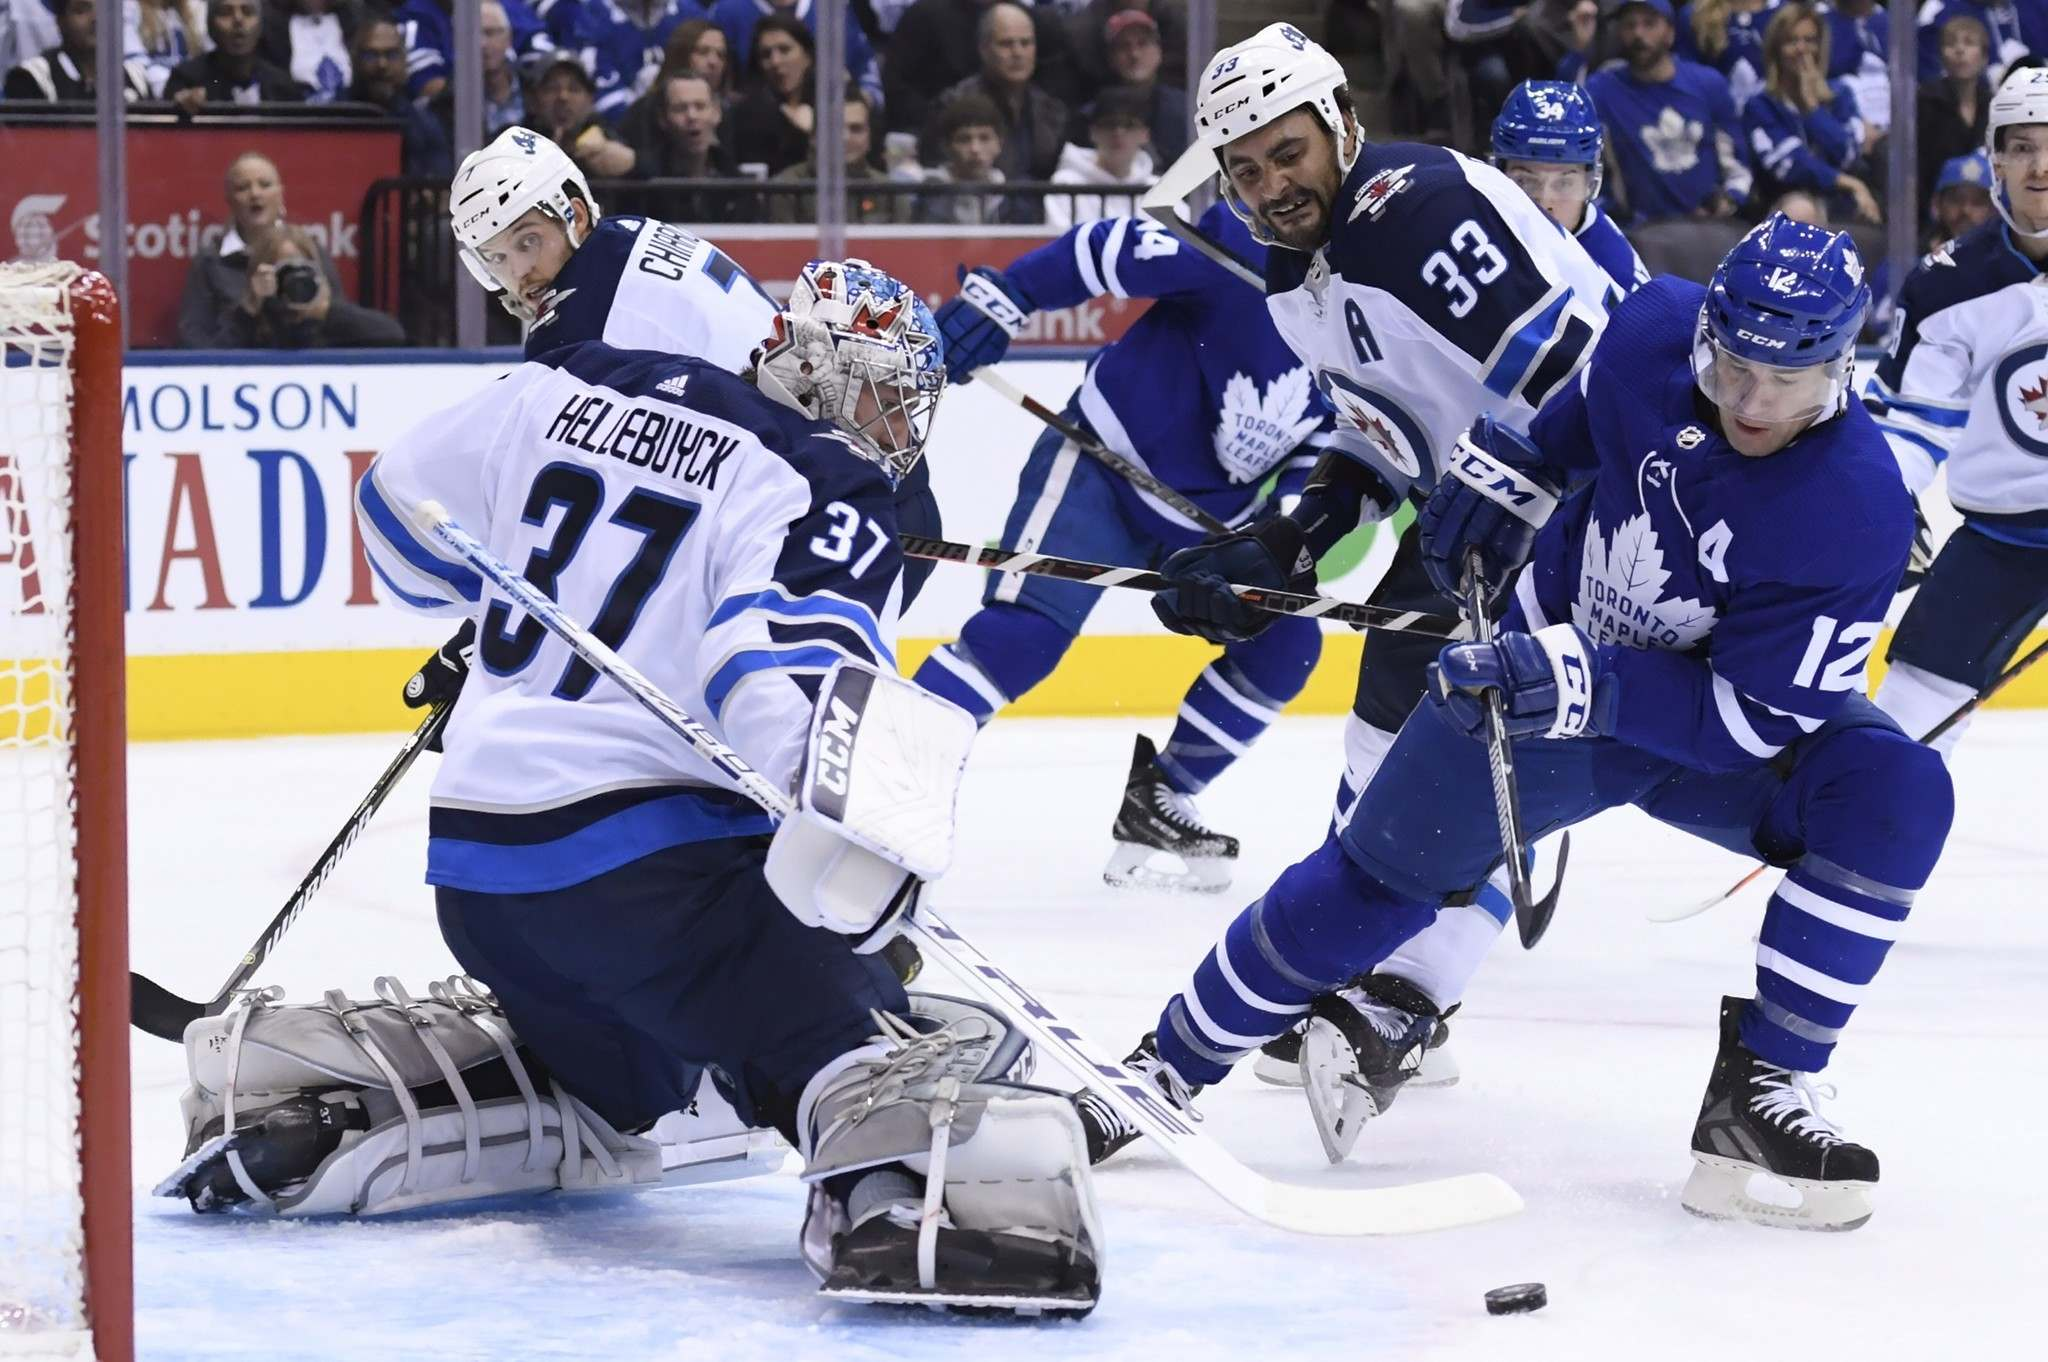 On Saturday, Winnipeg built up a 2-0 lead with Hellebuyck stopping the first 22 shots he faced, but the Leafs stormed back with three goals in the final period. (Nathan Denette / The Canadian Press files)</p>